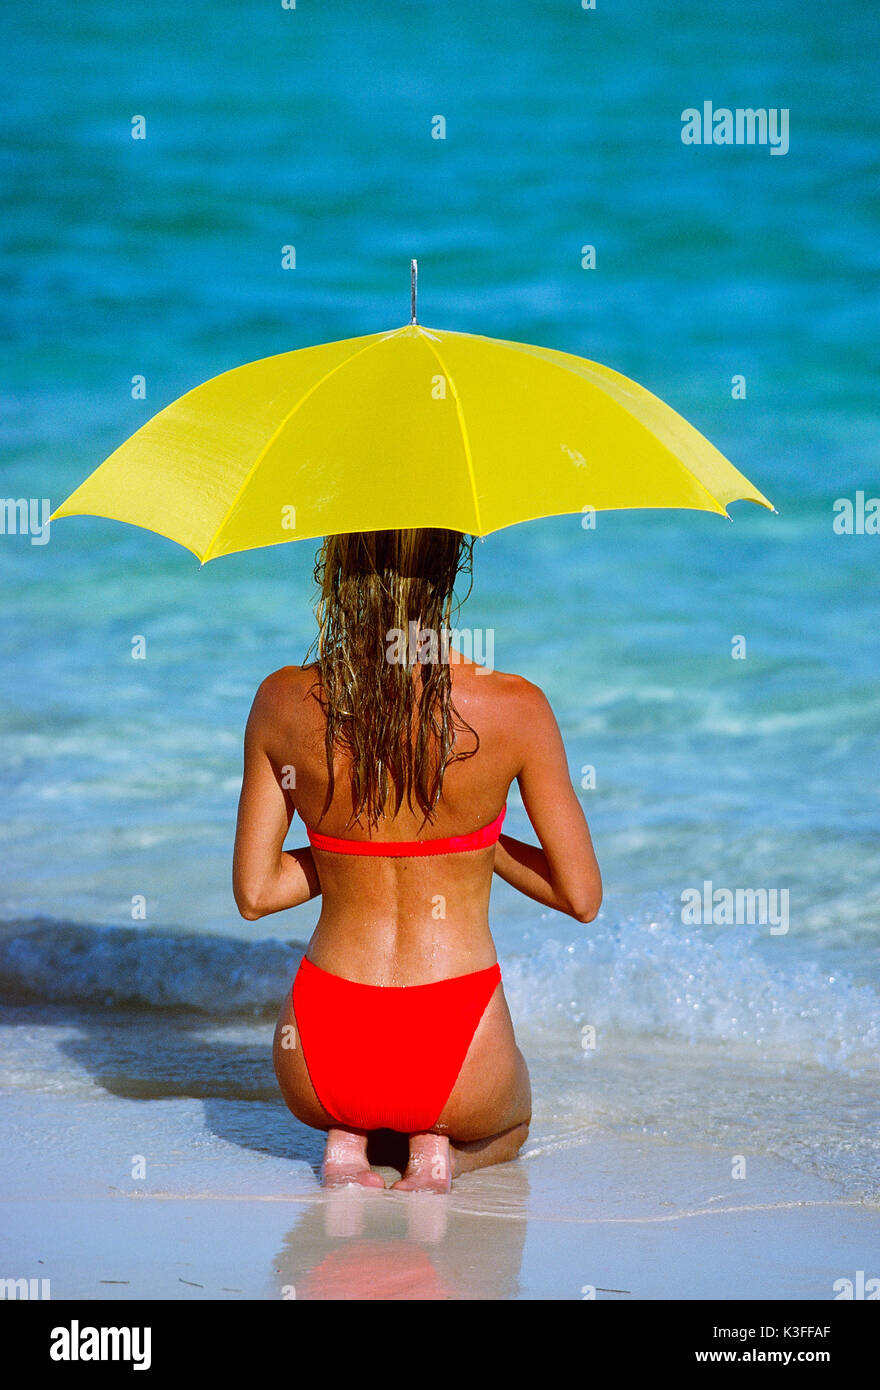 d8d3577412 Young woman with red bikini and yellow sunshade at the beach - Stock Image